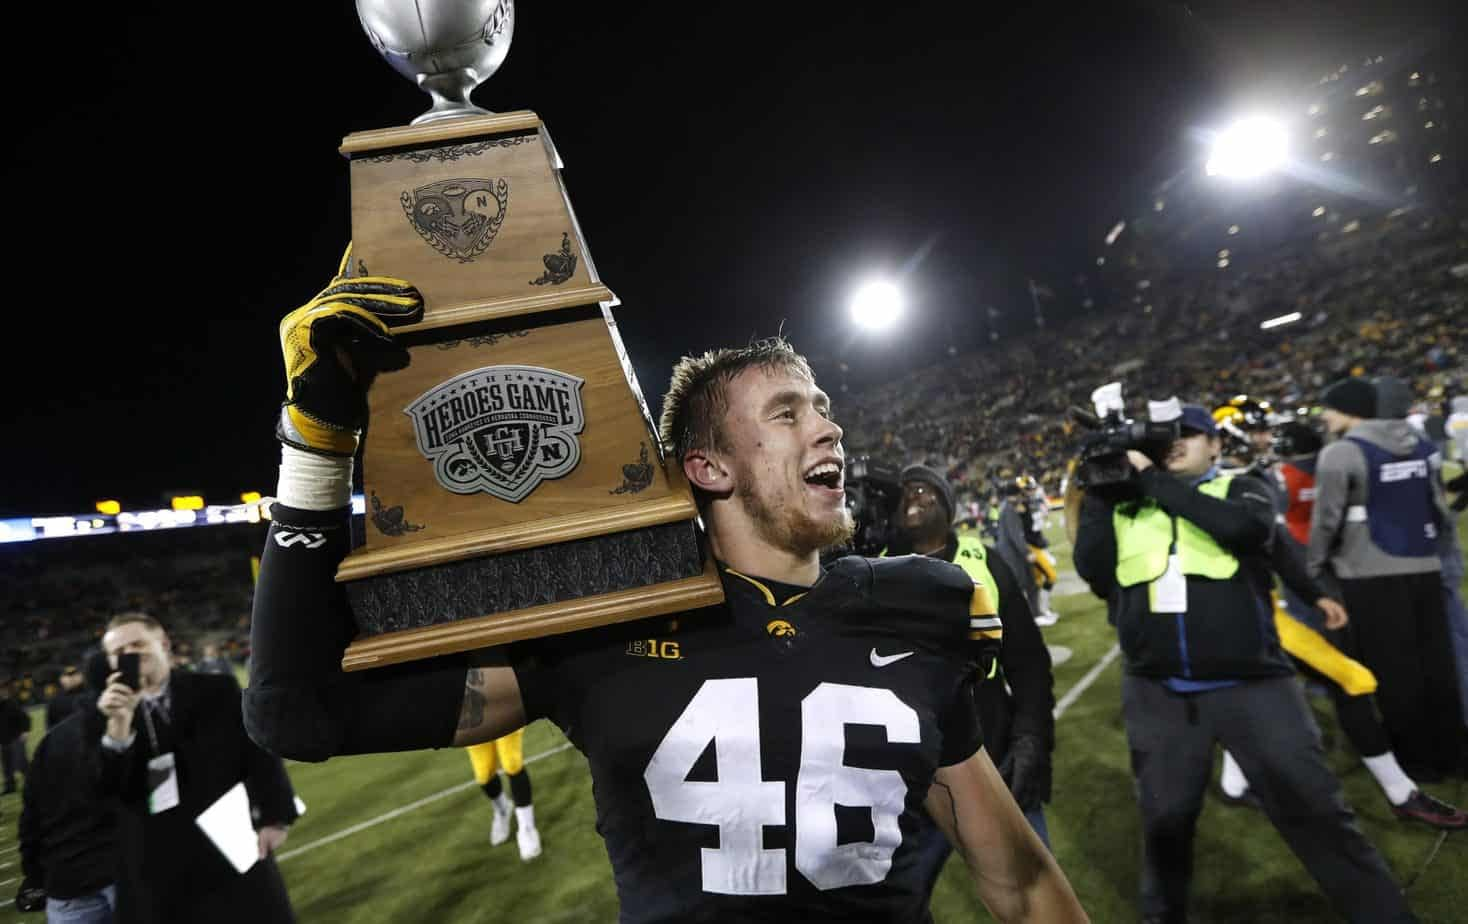 Former Iowa Hawkeye George Kittle took an apparent attempt by Nebraska to troll Iowa as an opportunity to ether the Cornhuskers